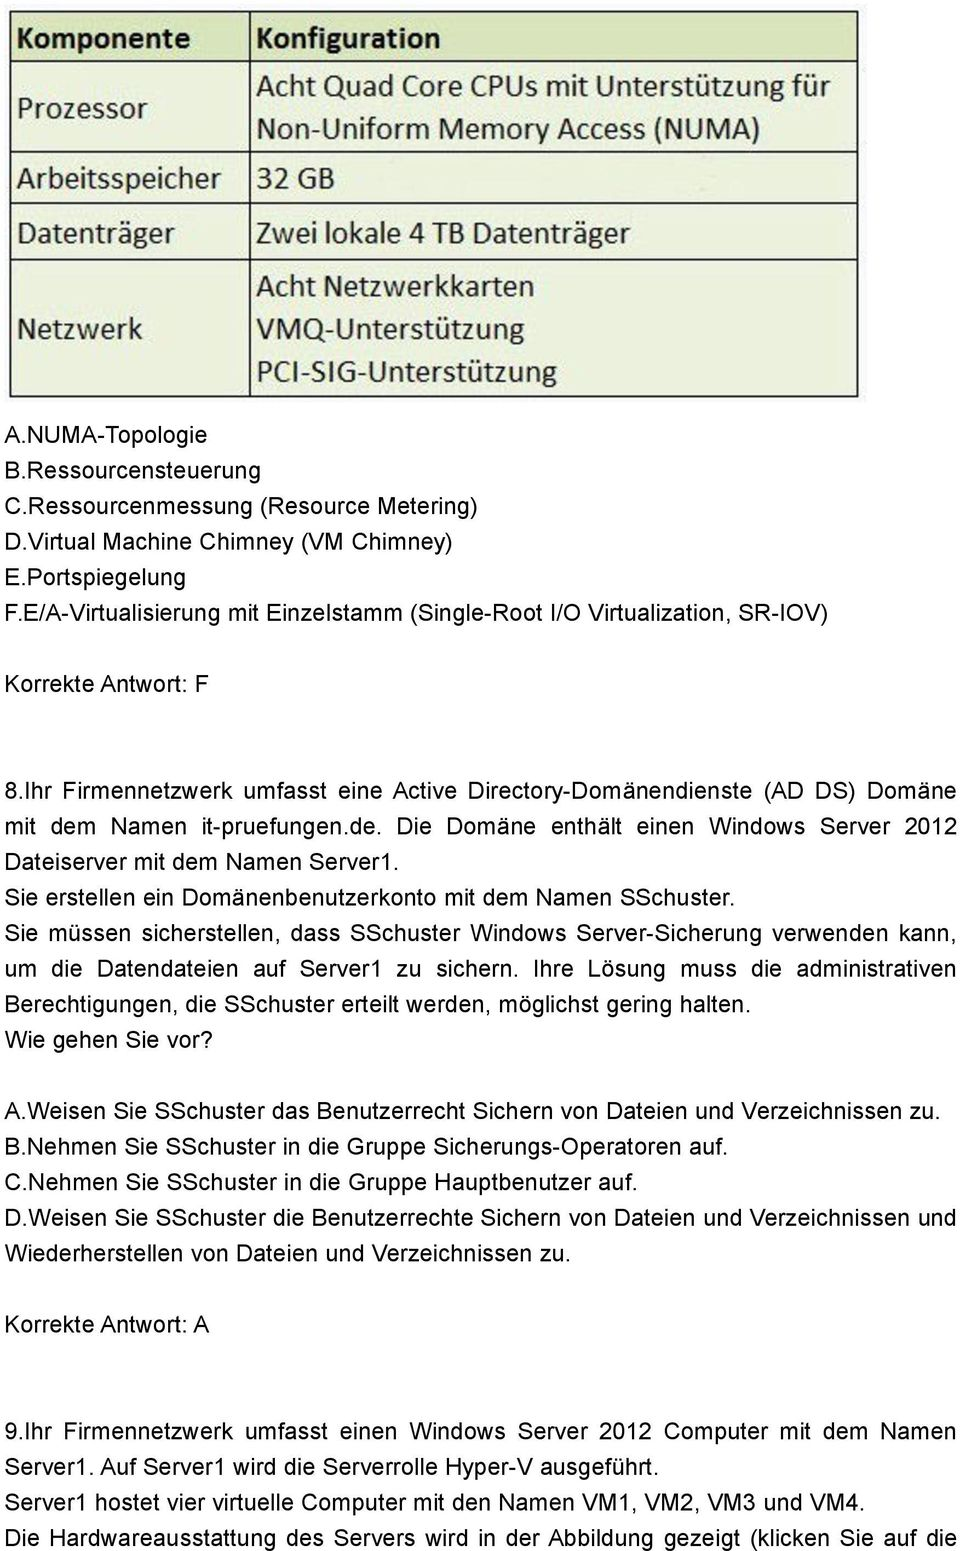 Ihr Firmennetzwerk umfasst eine Active Directory-Domänendienste (AD DS) Domäne mit dem Namen it-pruefungen.de. Die Domäne enthält einen Windows Server 2012 Dateiserver mit dem Namen Server1.